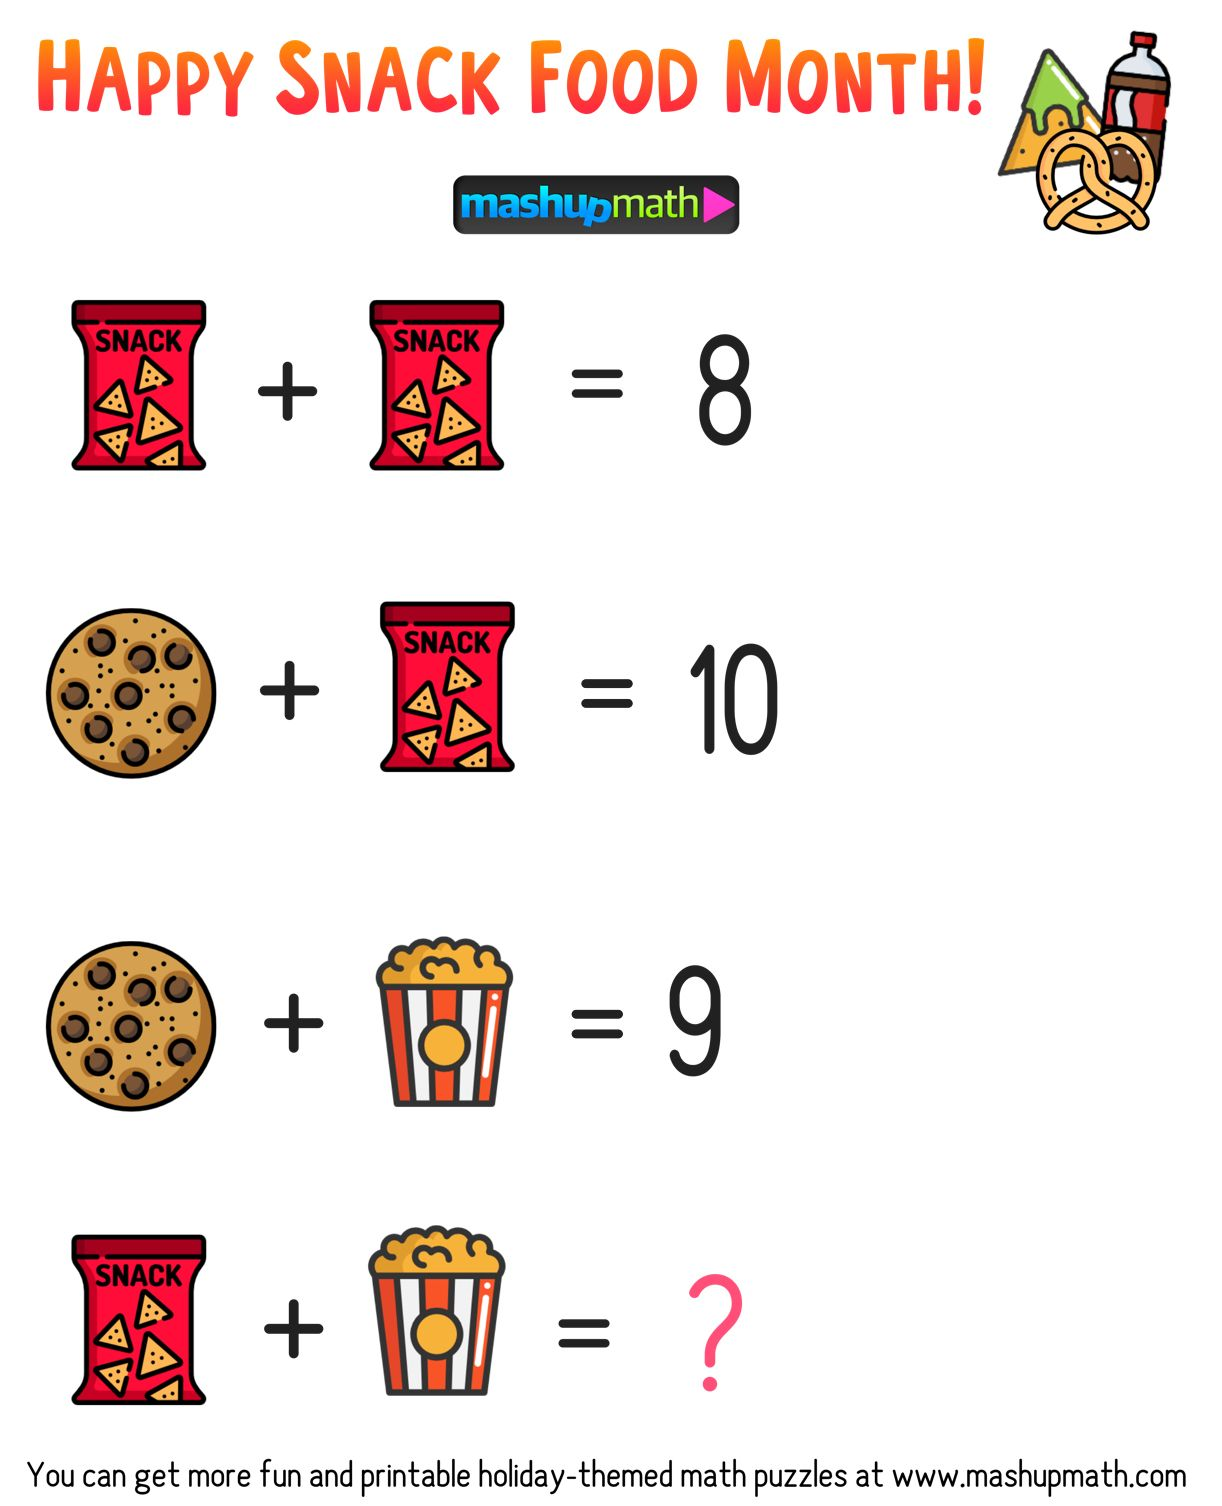 Free Math Brain Teaser Puzzles For Kids In Grades 1 6 To